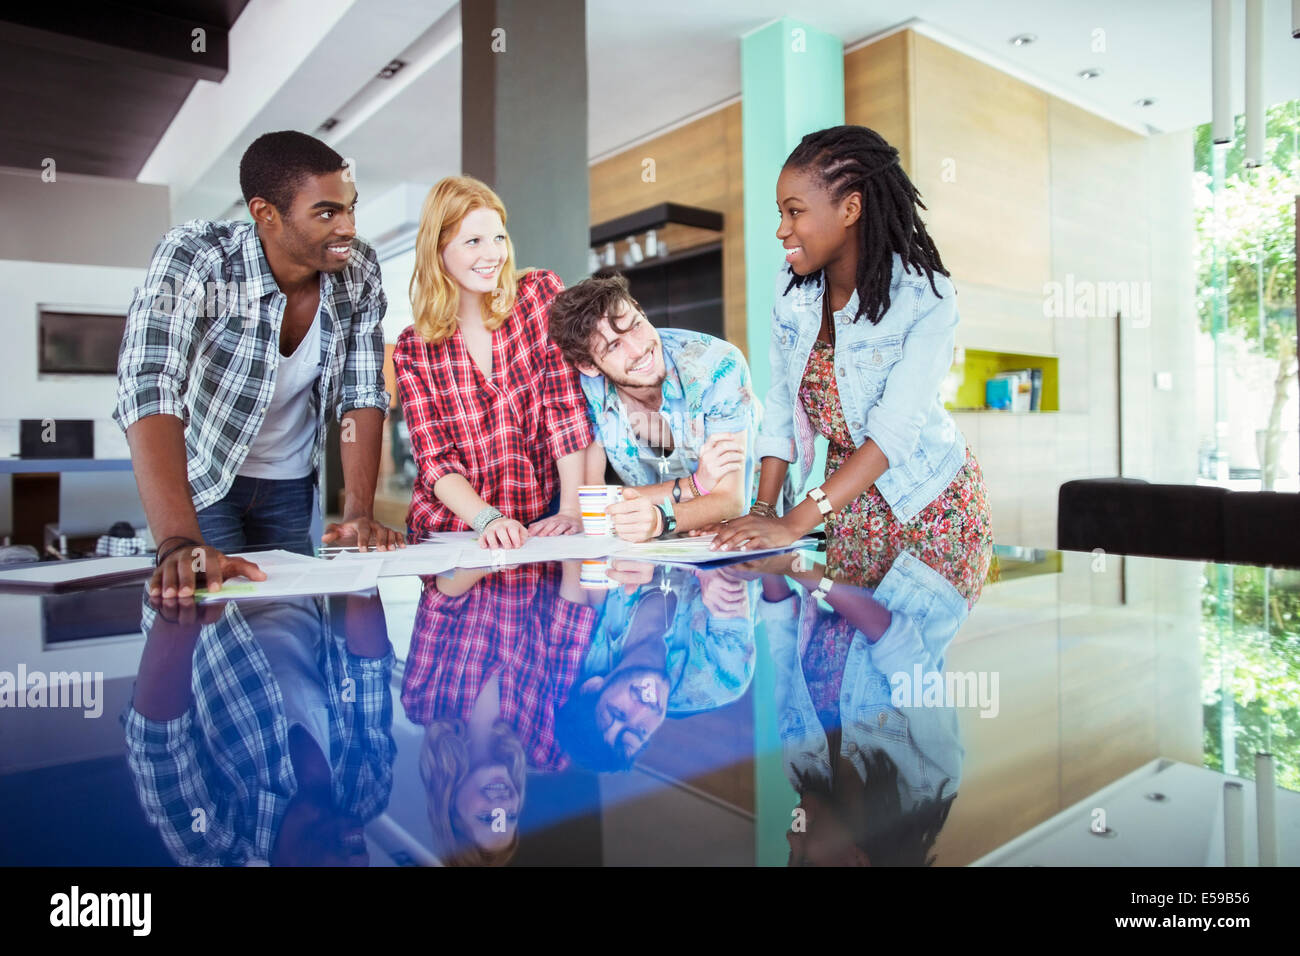 People working together at conference table in office Stock Photo